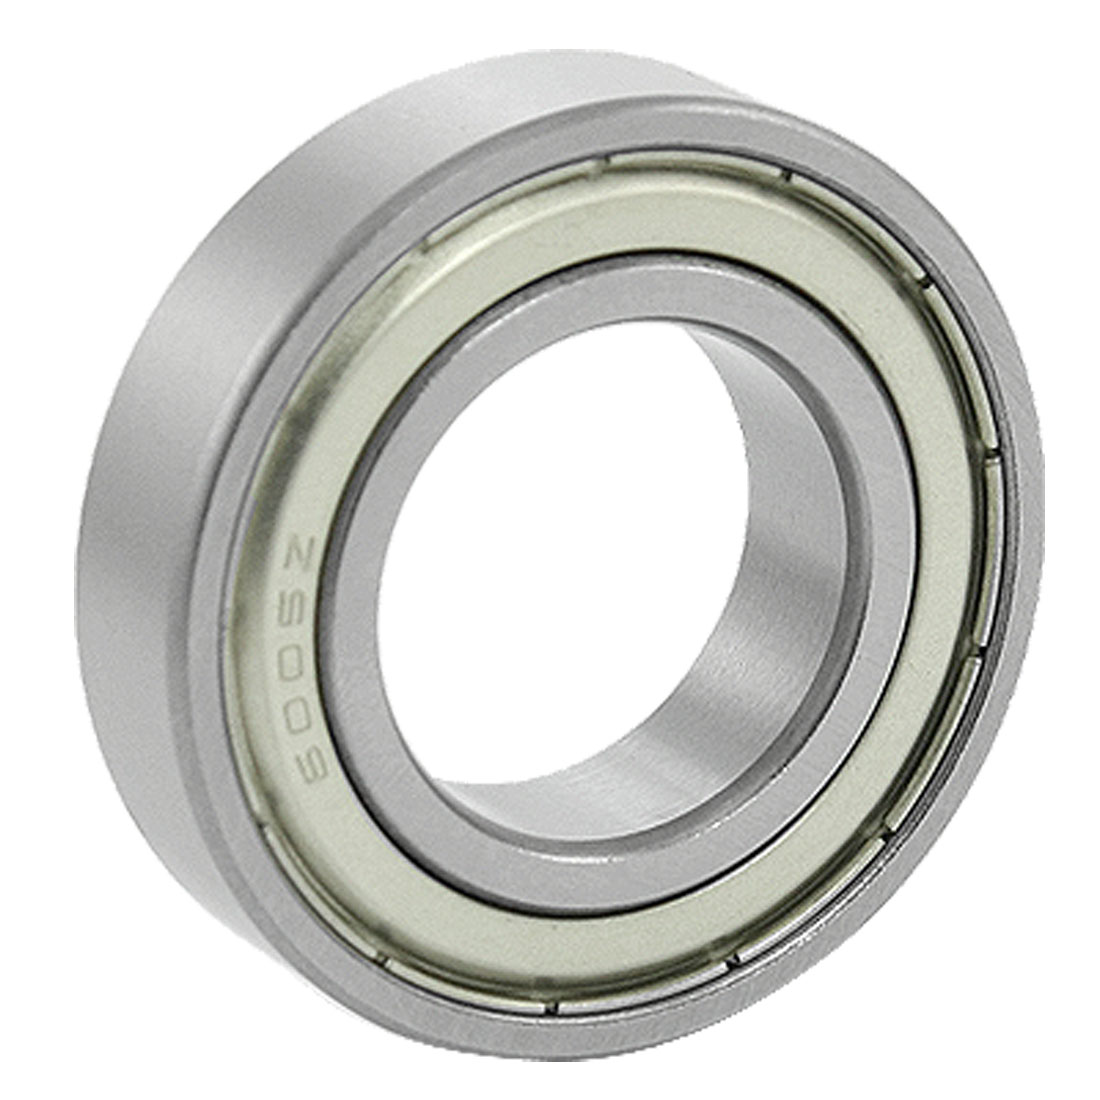 25mm ID 47mm OD 12mm Width Deep Groove Double Shielded Wheel Axle Ball Bearing 6005Z